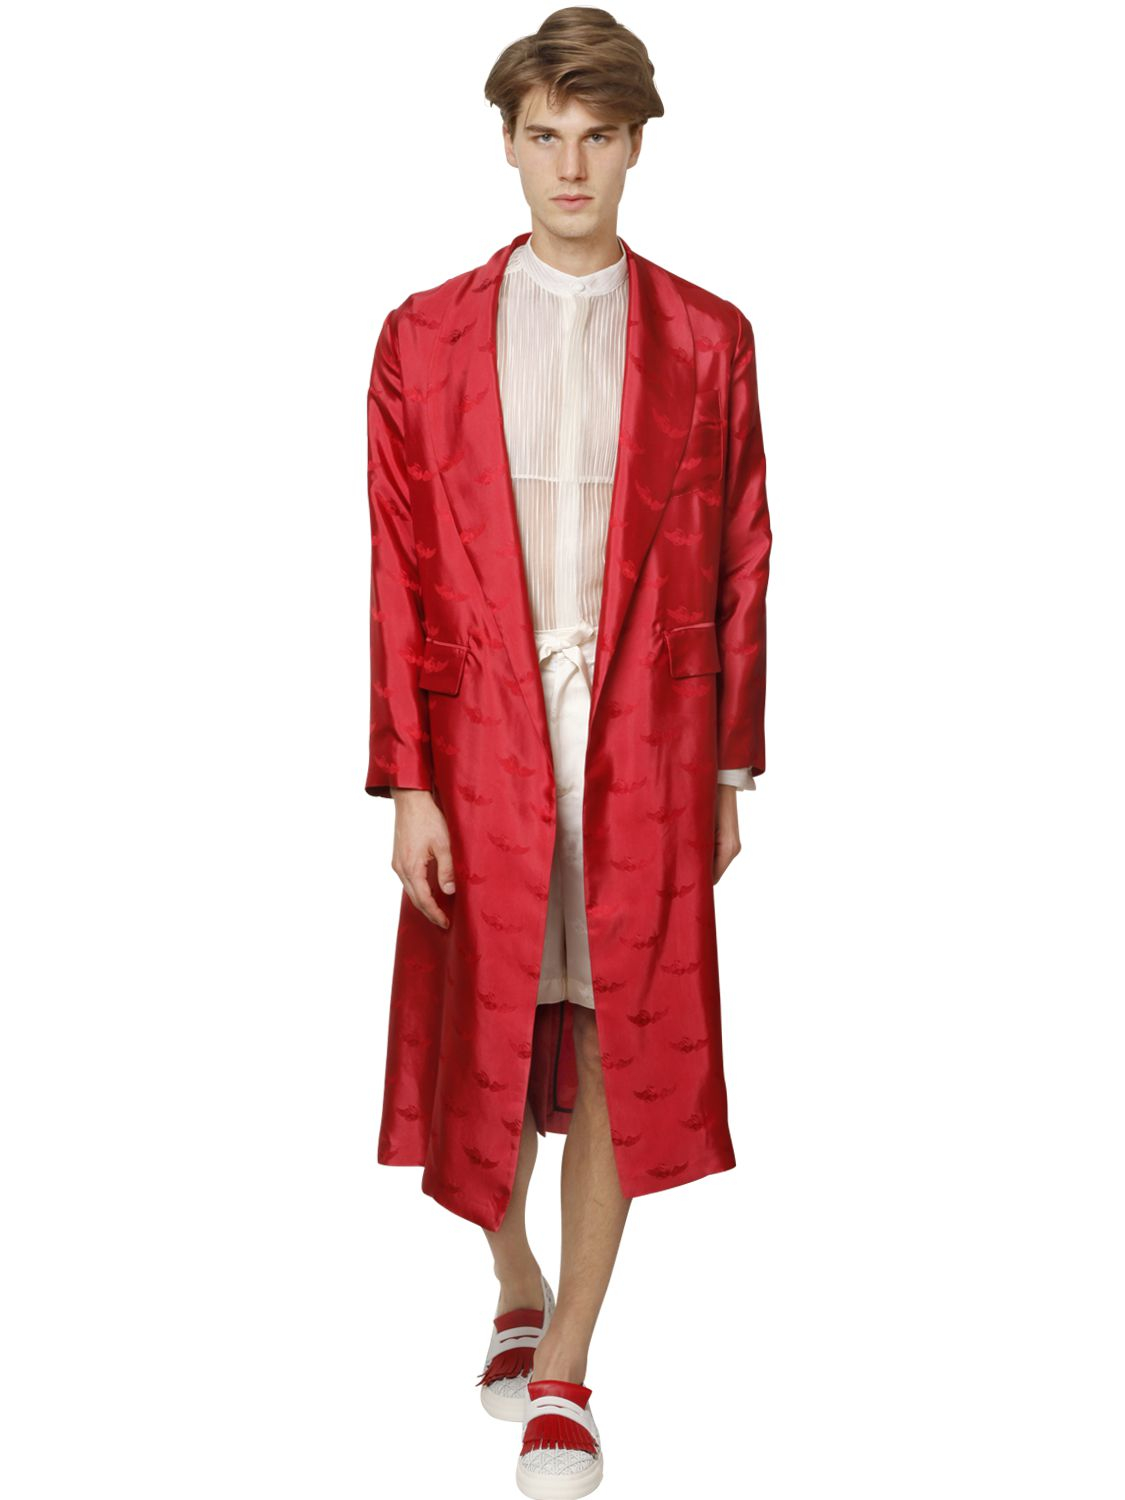 Lyst - La Perla Flying Oyster Silk Jacquard Robe in Red for Men 377676571